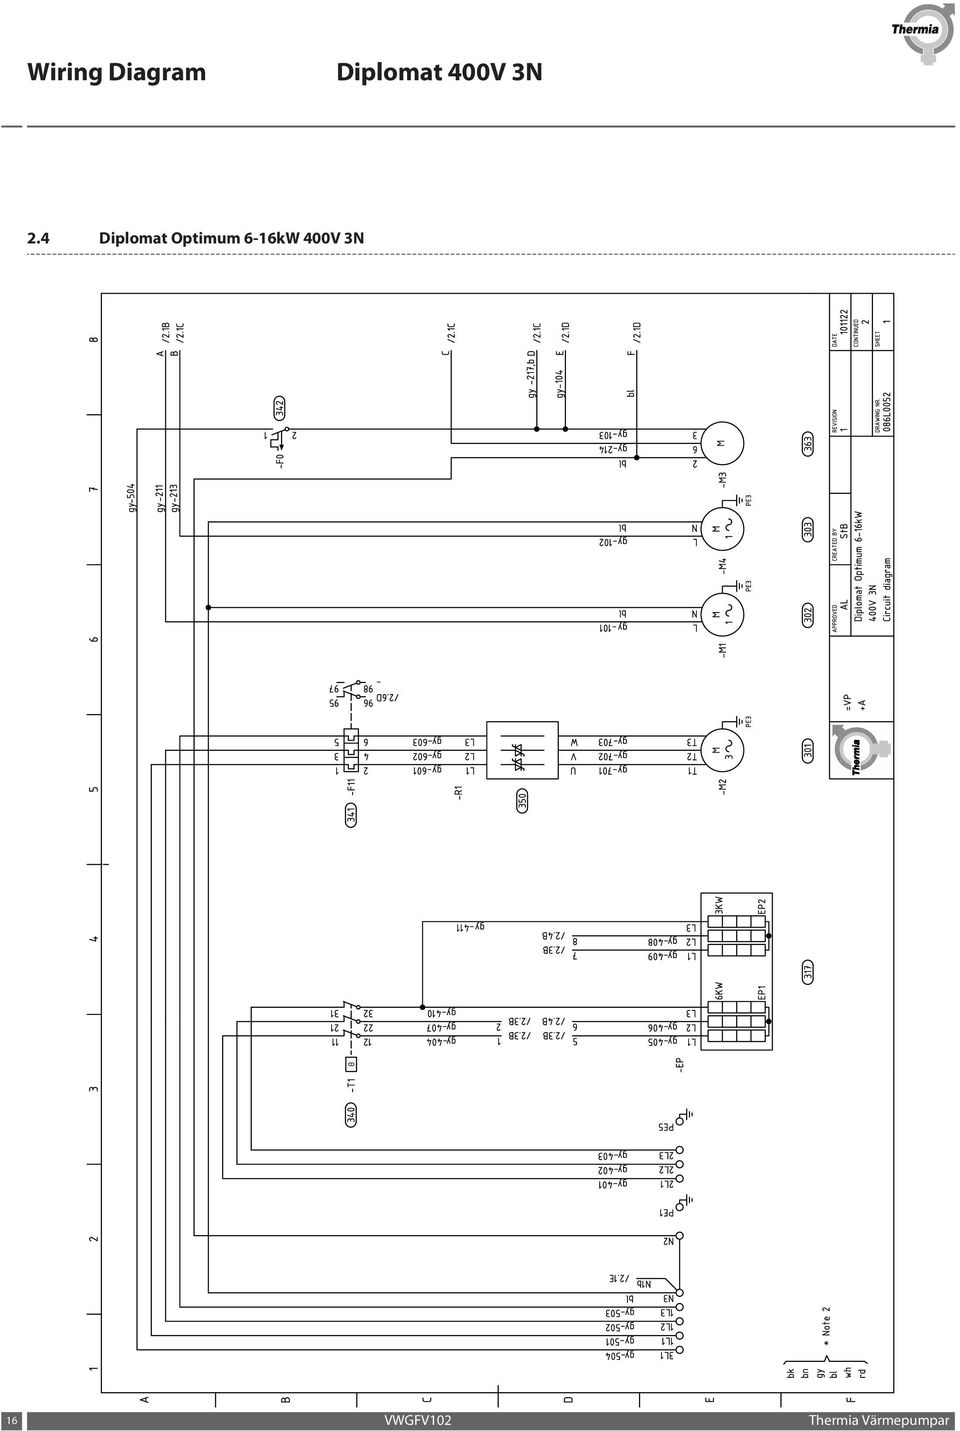 Aaon Wiring Schematics | Wiring Diagram on aaon parts, aaon units, 3 phase electric motor diagrams,